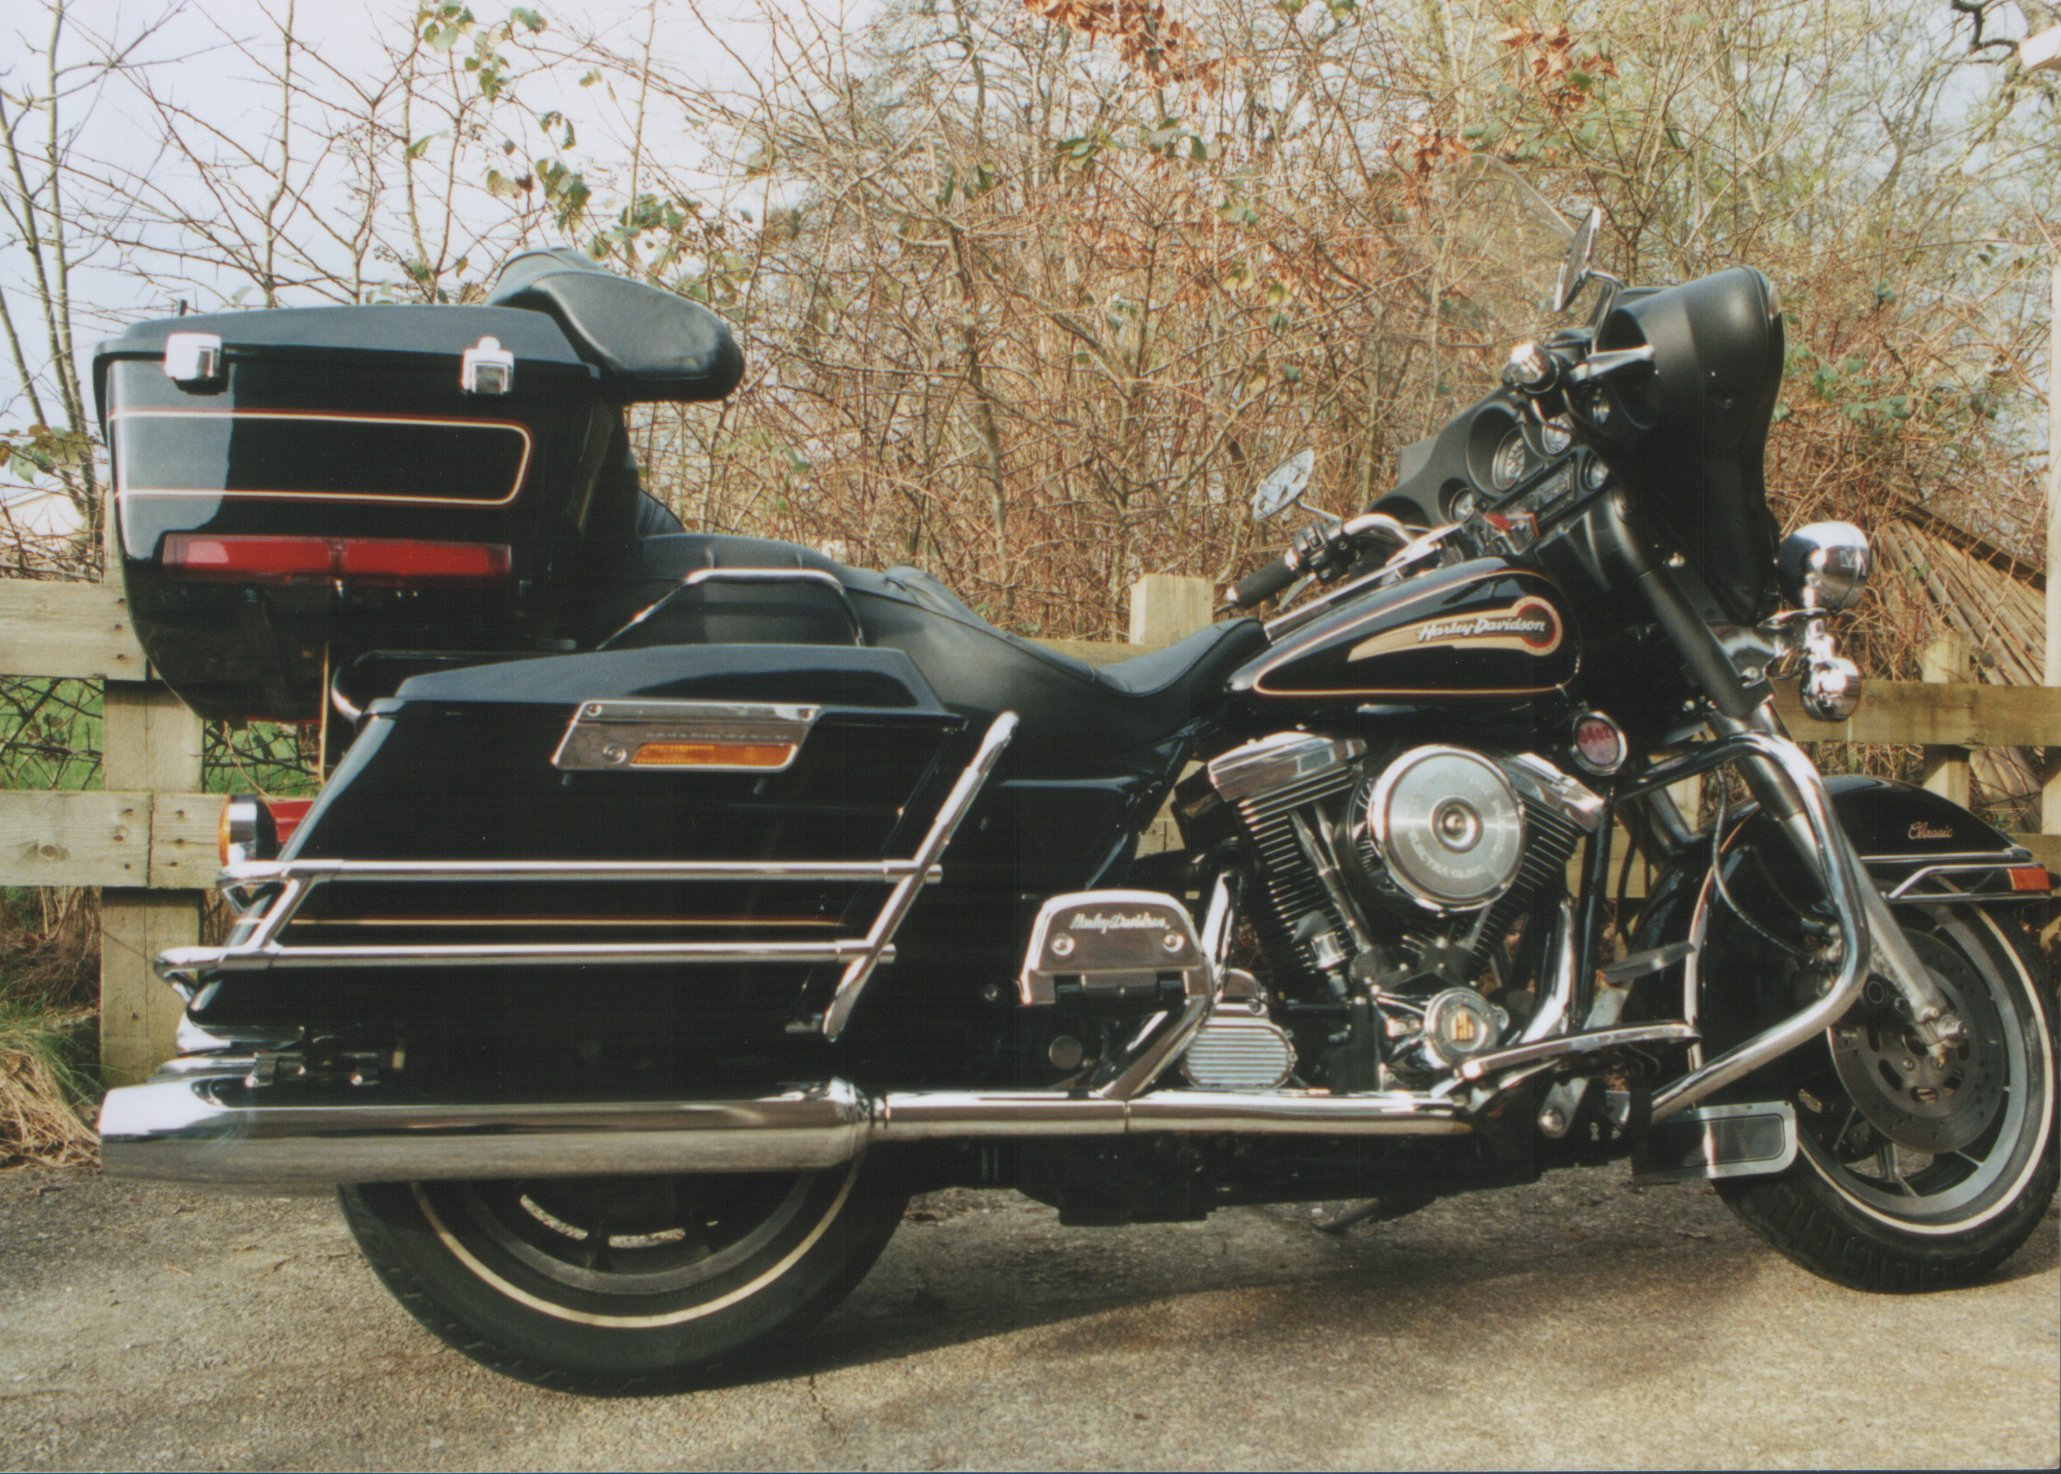 1990 harley davidson flhtc 1340 electra glide classic pics specs and information. Black Bedroom Furniture Sets. Home Design Ideas